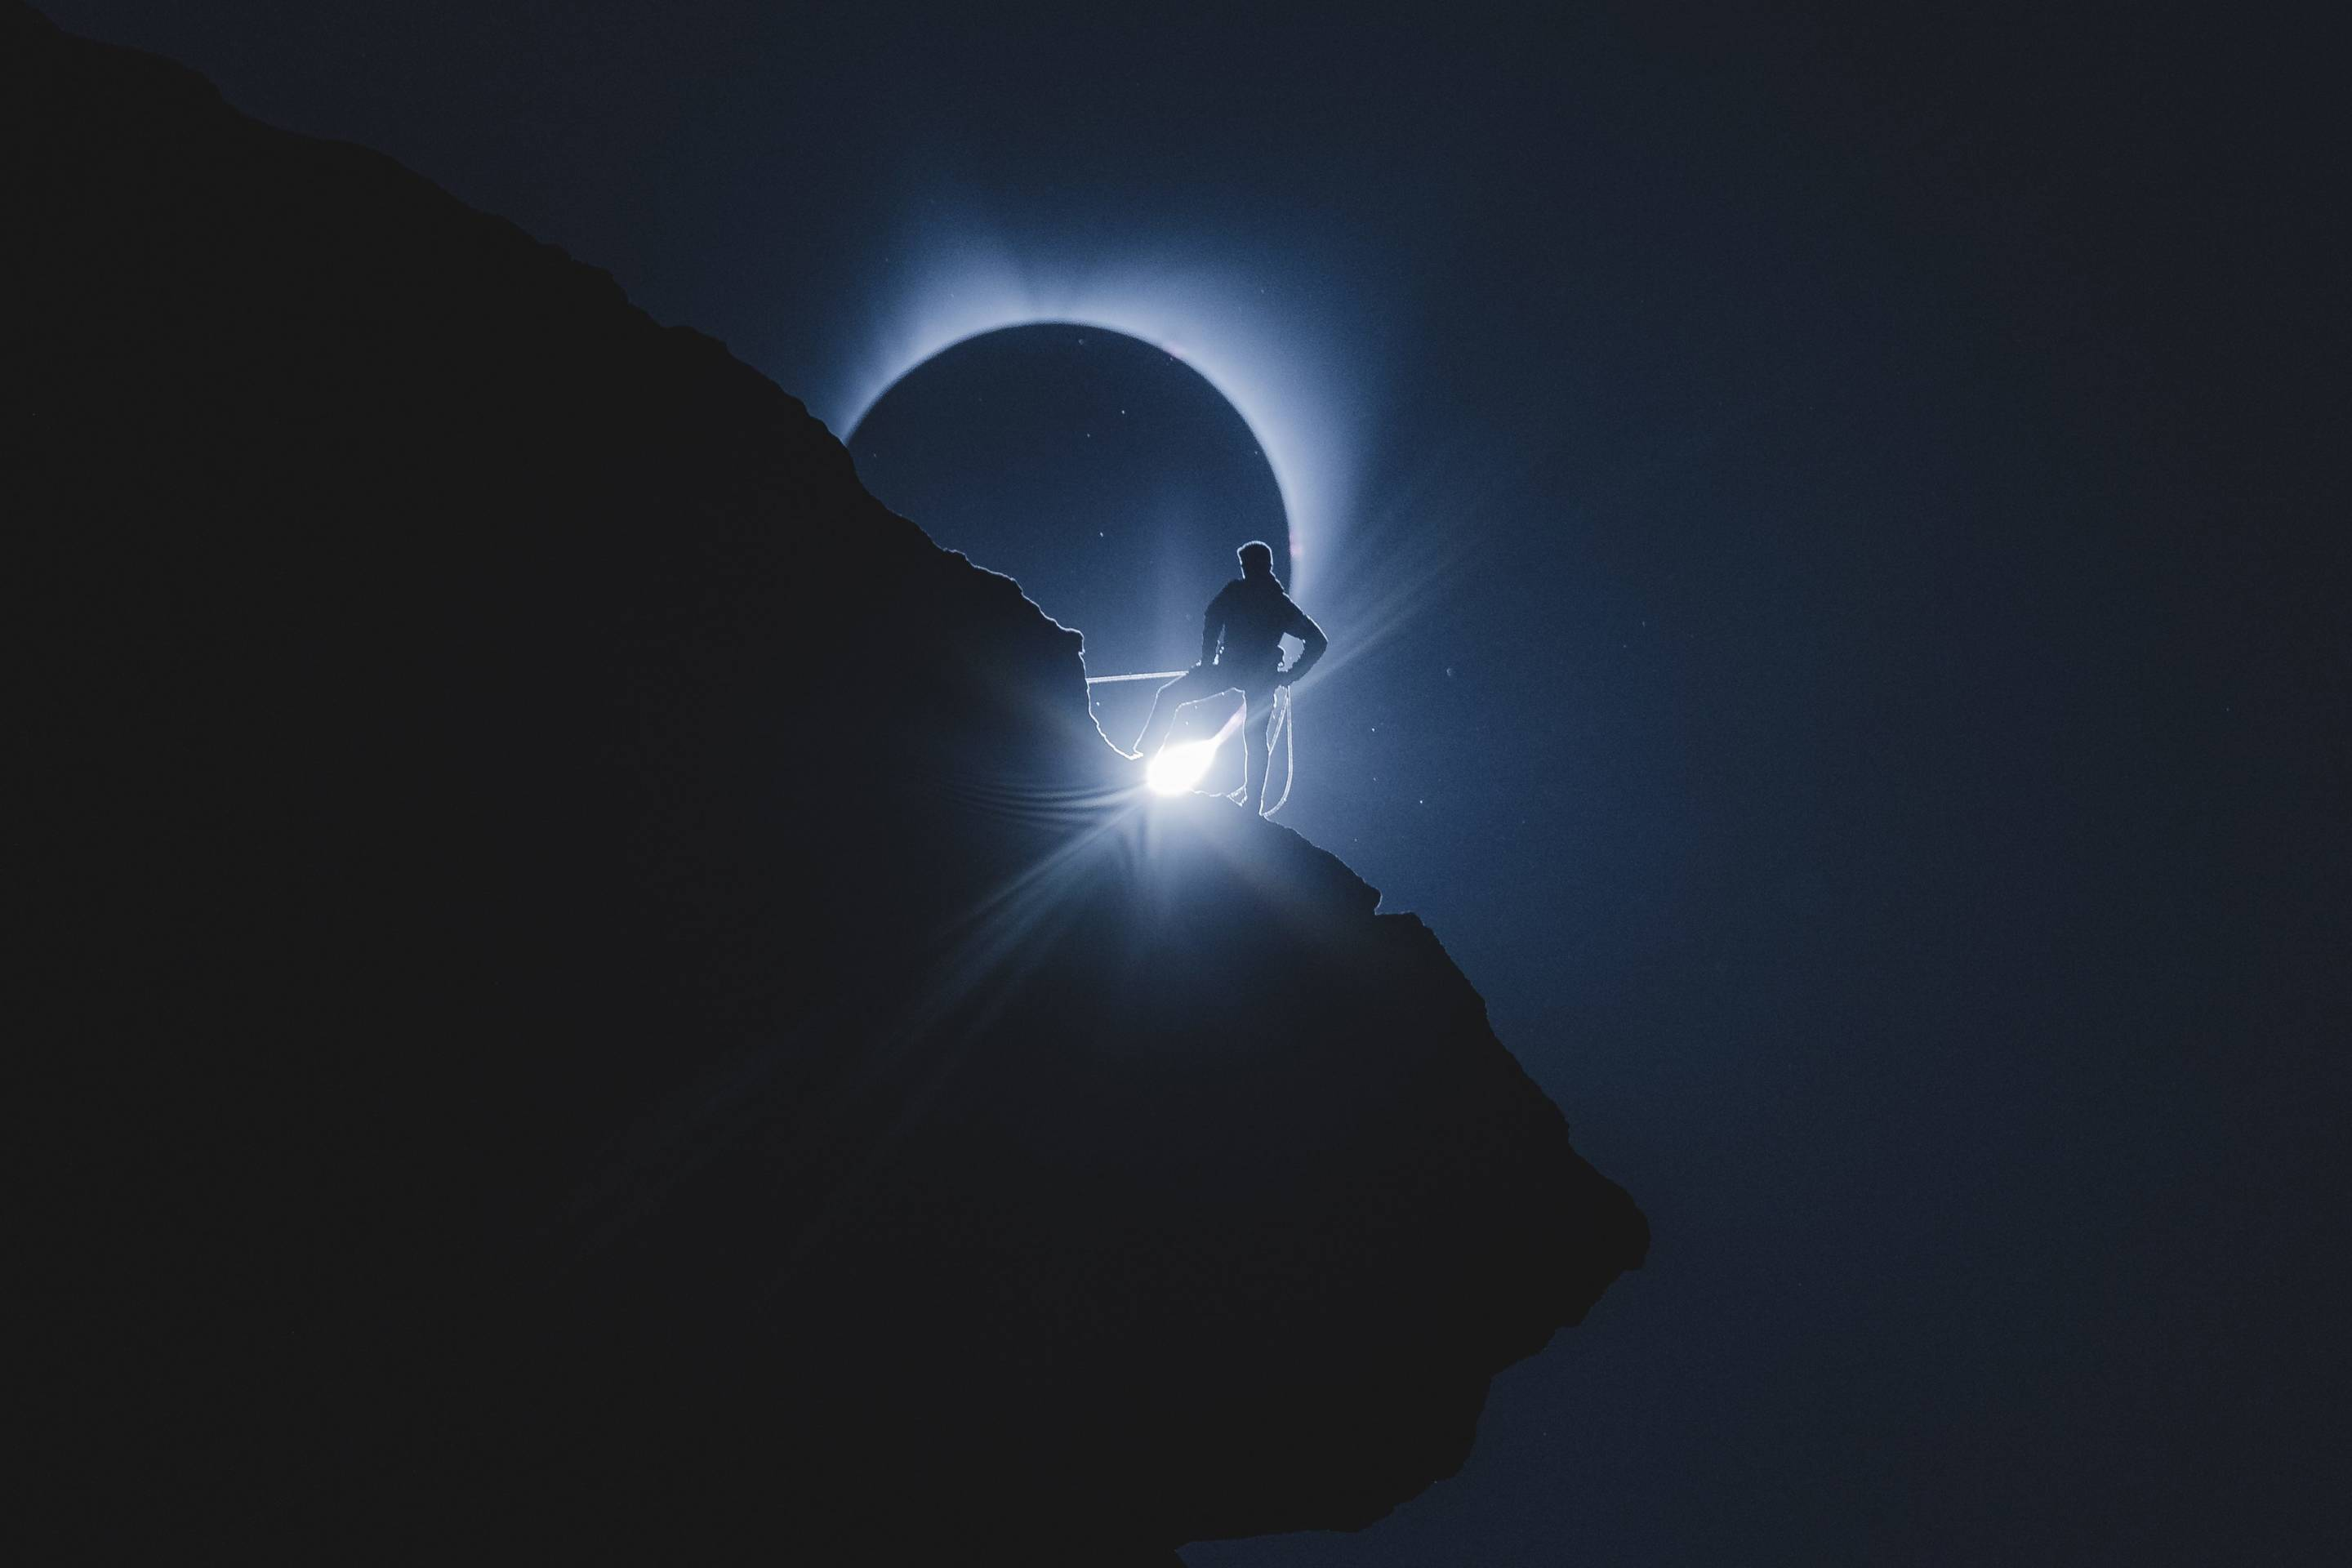 Viral photo of a climber in totality during the total solar eclipse of 2017. Photo taken at Smith Rock state park by Andrew Studer